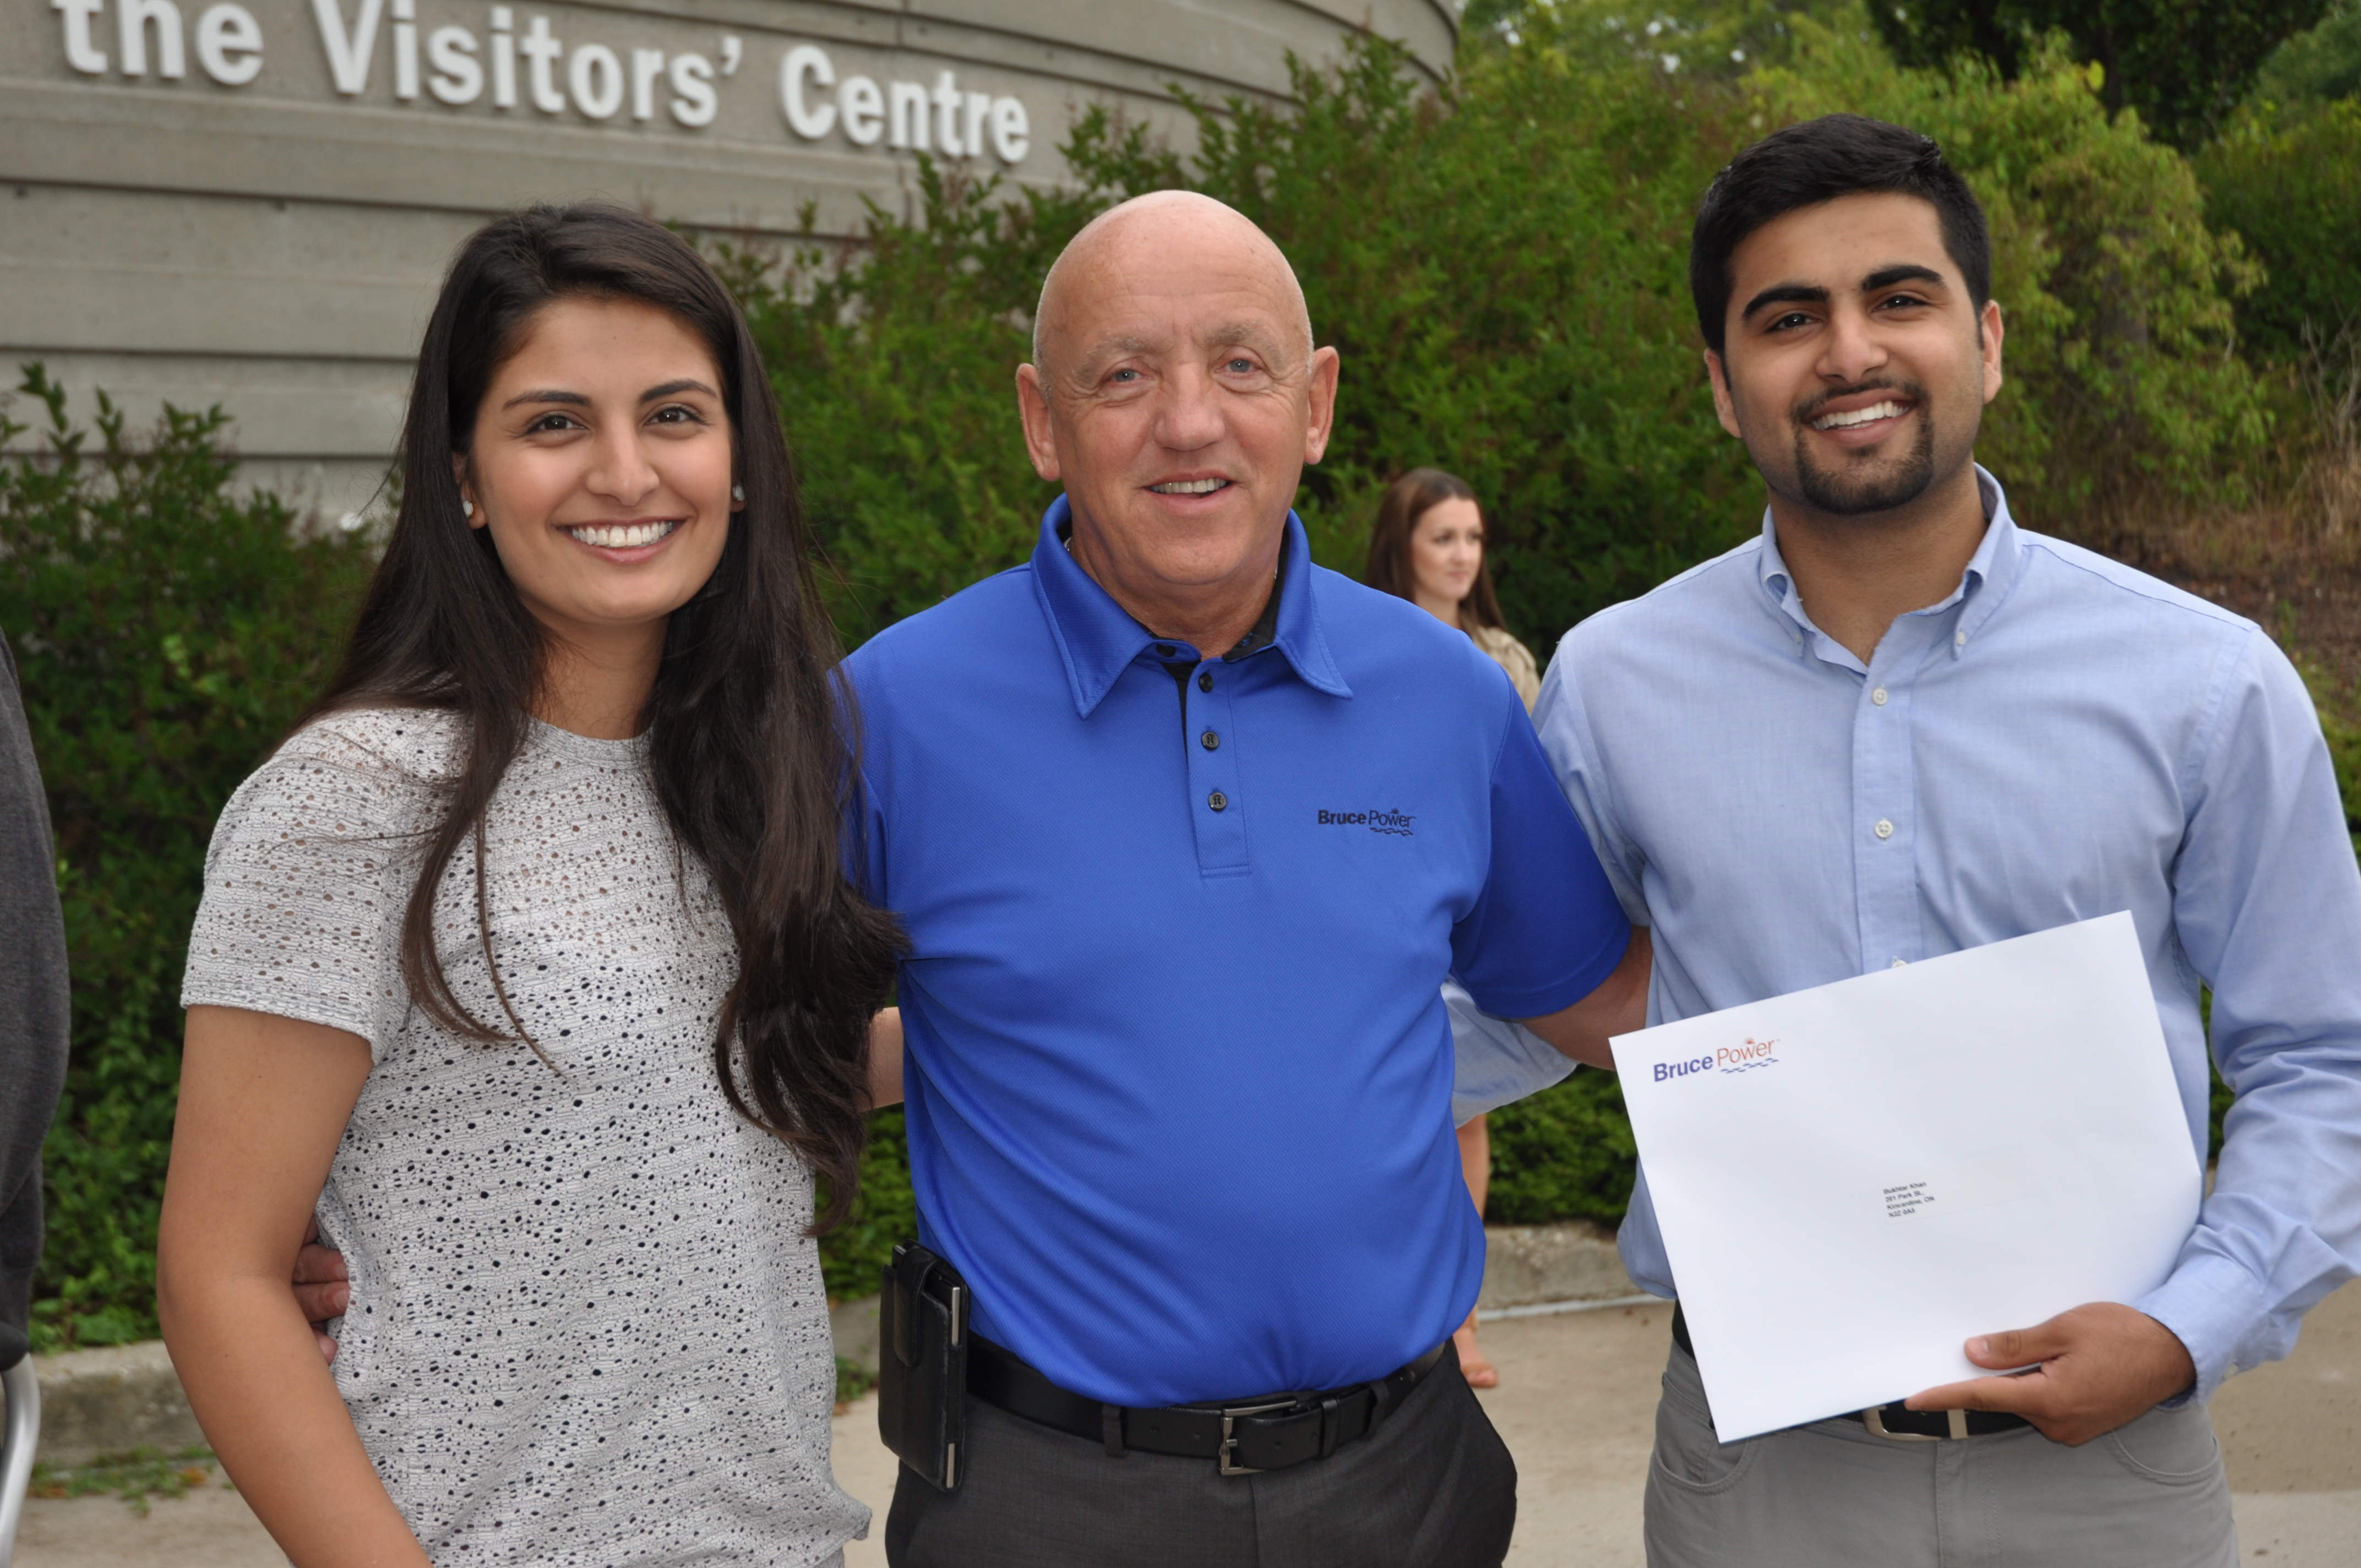 Bruce Power supports leaders of tomorrow through educational scholarships